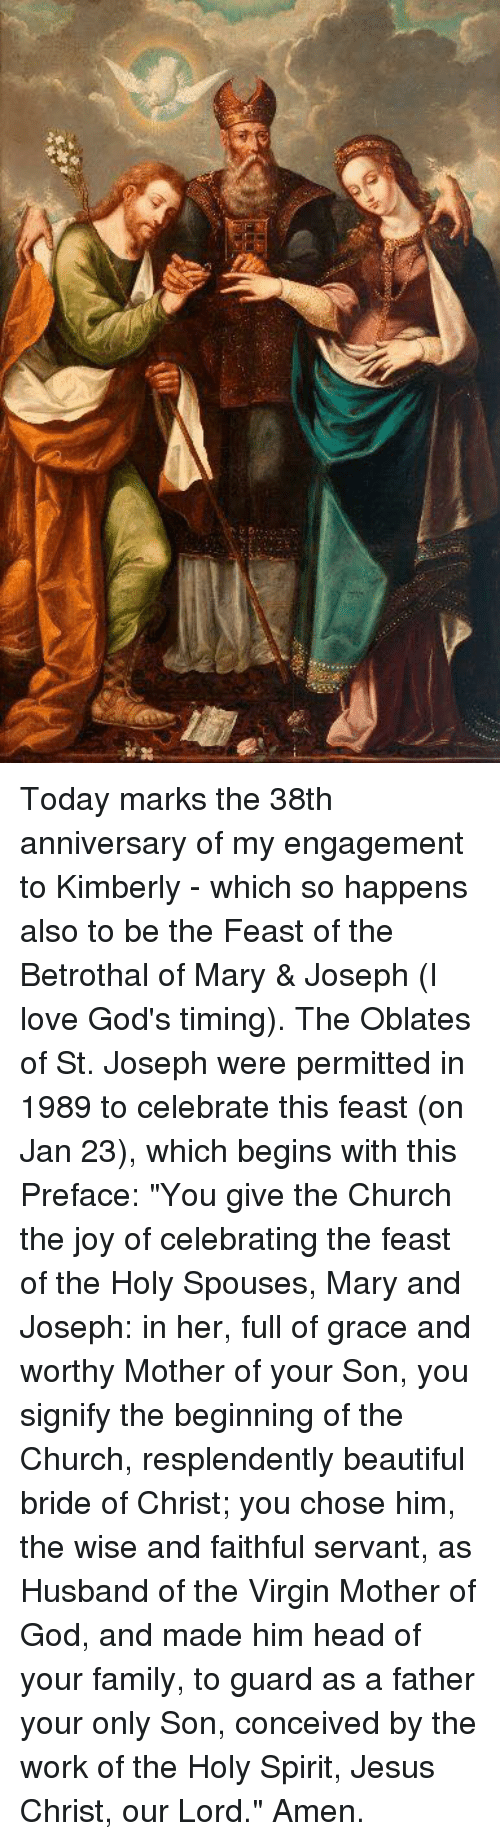 """Conceivment: Today marks the 38th anniversary of my engagement to Kimberly - which so happens also to be the Feast of the Betrothal of Mary & Joseph (I love God's timing).    The Oblates of St. Joseph were permitted in 1989 to celebrate this feast (on Jan 23), which begins with this Preface:  """"You give the Church the joy of celebrating the feast of the Holy Spouses, Mary and Joseph: in her, full of grace and worthy Mother of your Son, you signify the beginning of the Church, resplendently beautiful bride of Christ; you chose him, the wise and faithful servant, as Husband of the Virgin Mother of God, and made him head of your family, to guard as a father your only Son, conceived by the work of the Holy Spirit, Jesus Christ, our Lord."""" Amen."""